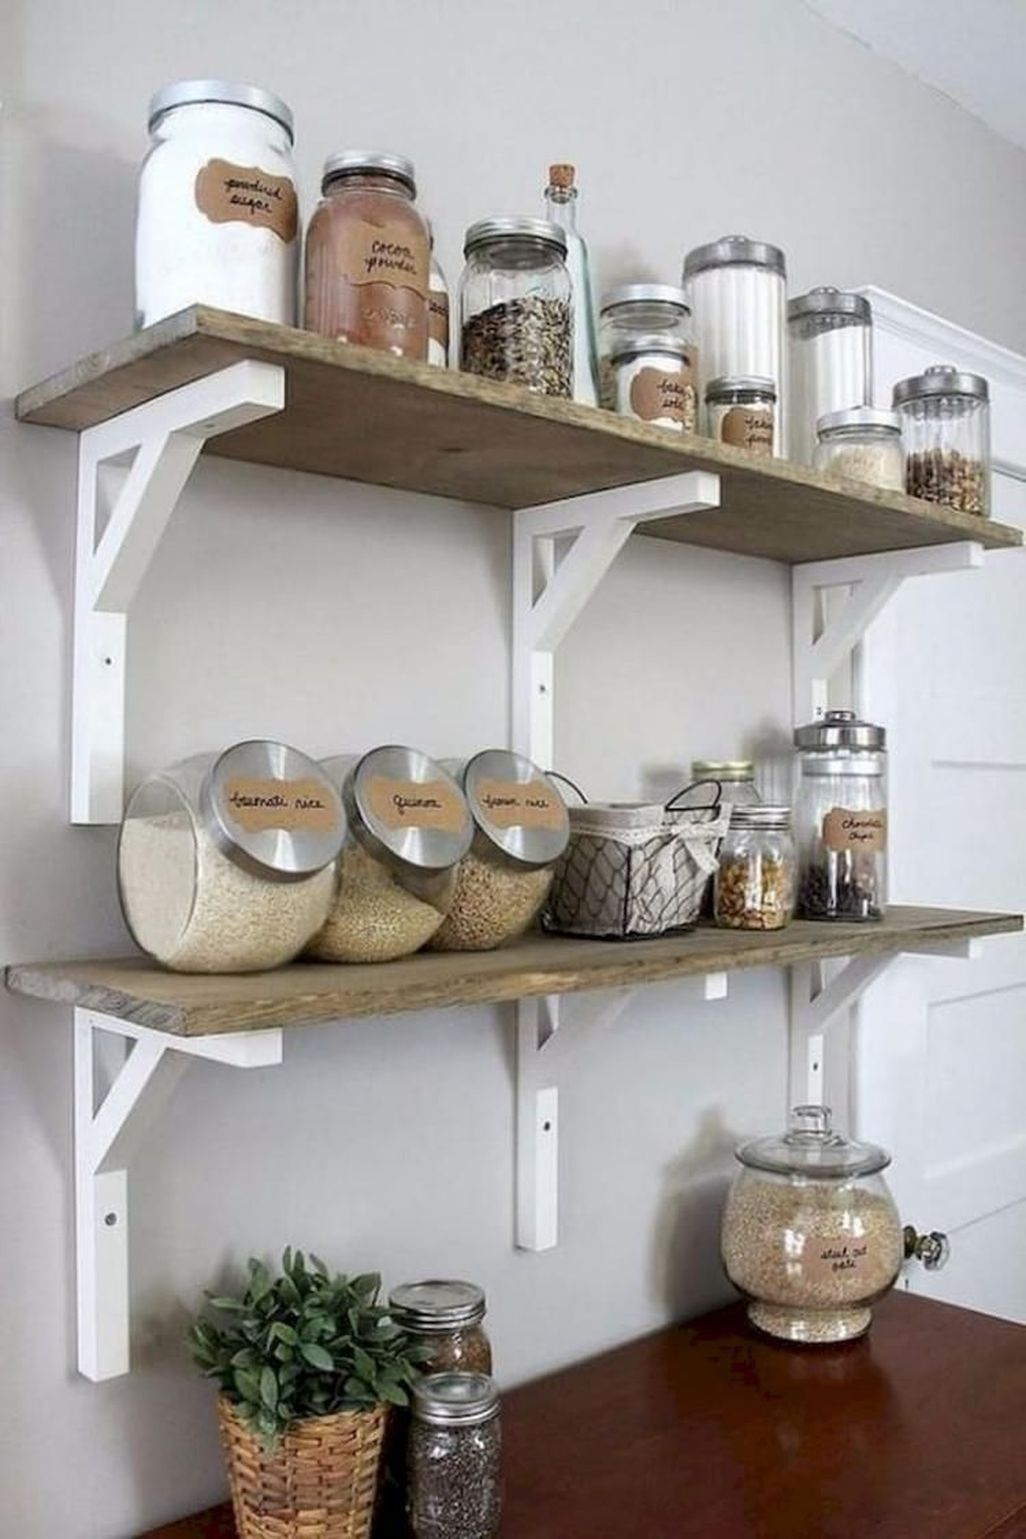 Totally smart diy college apartment decoration ideas on a budget 17